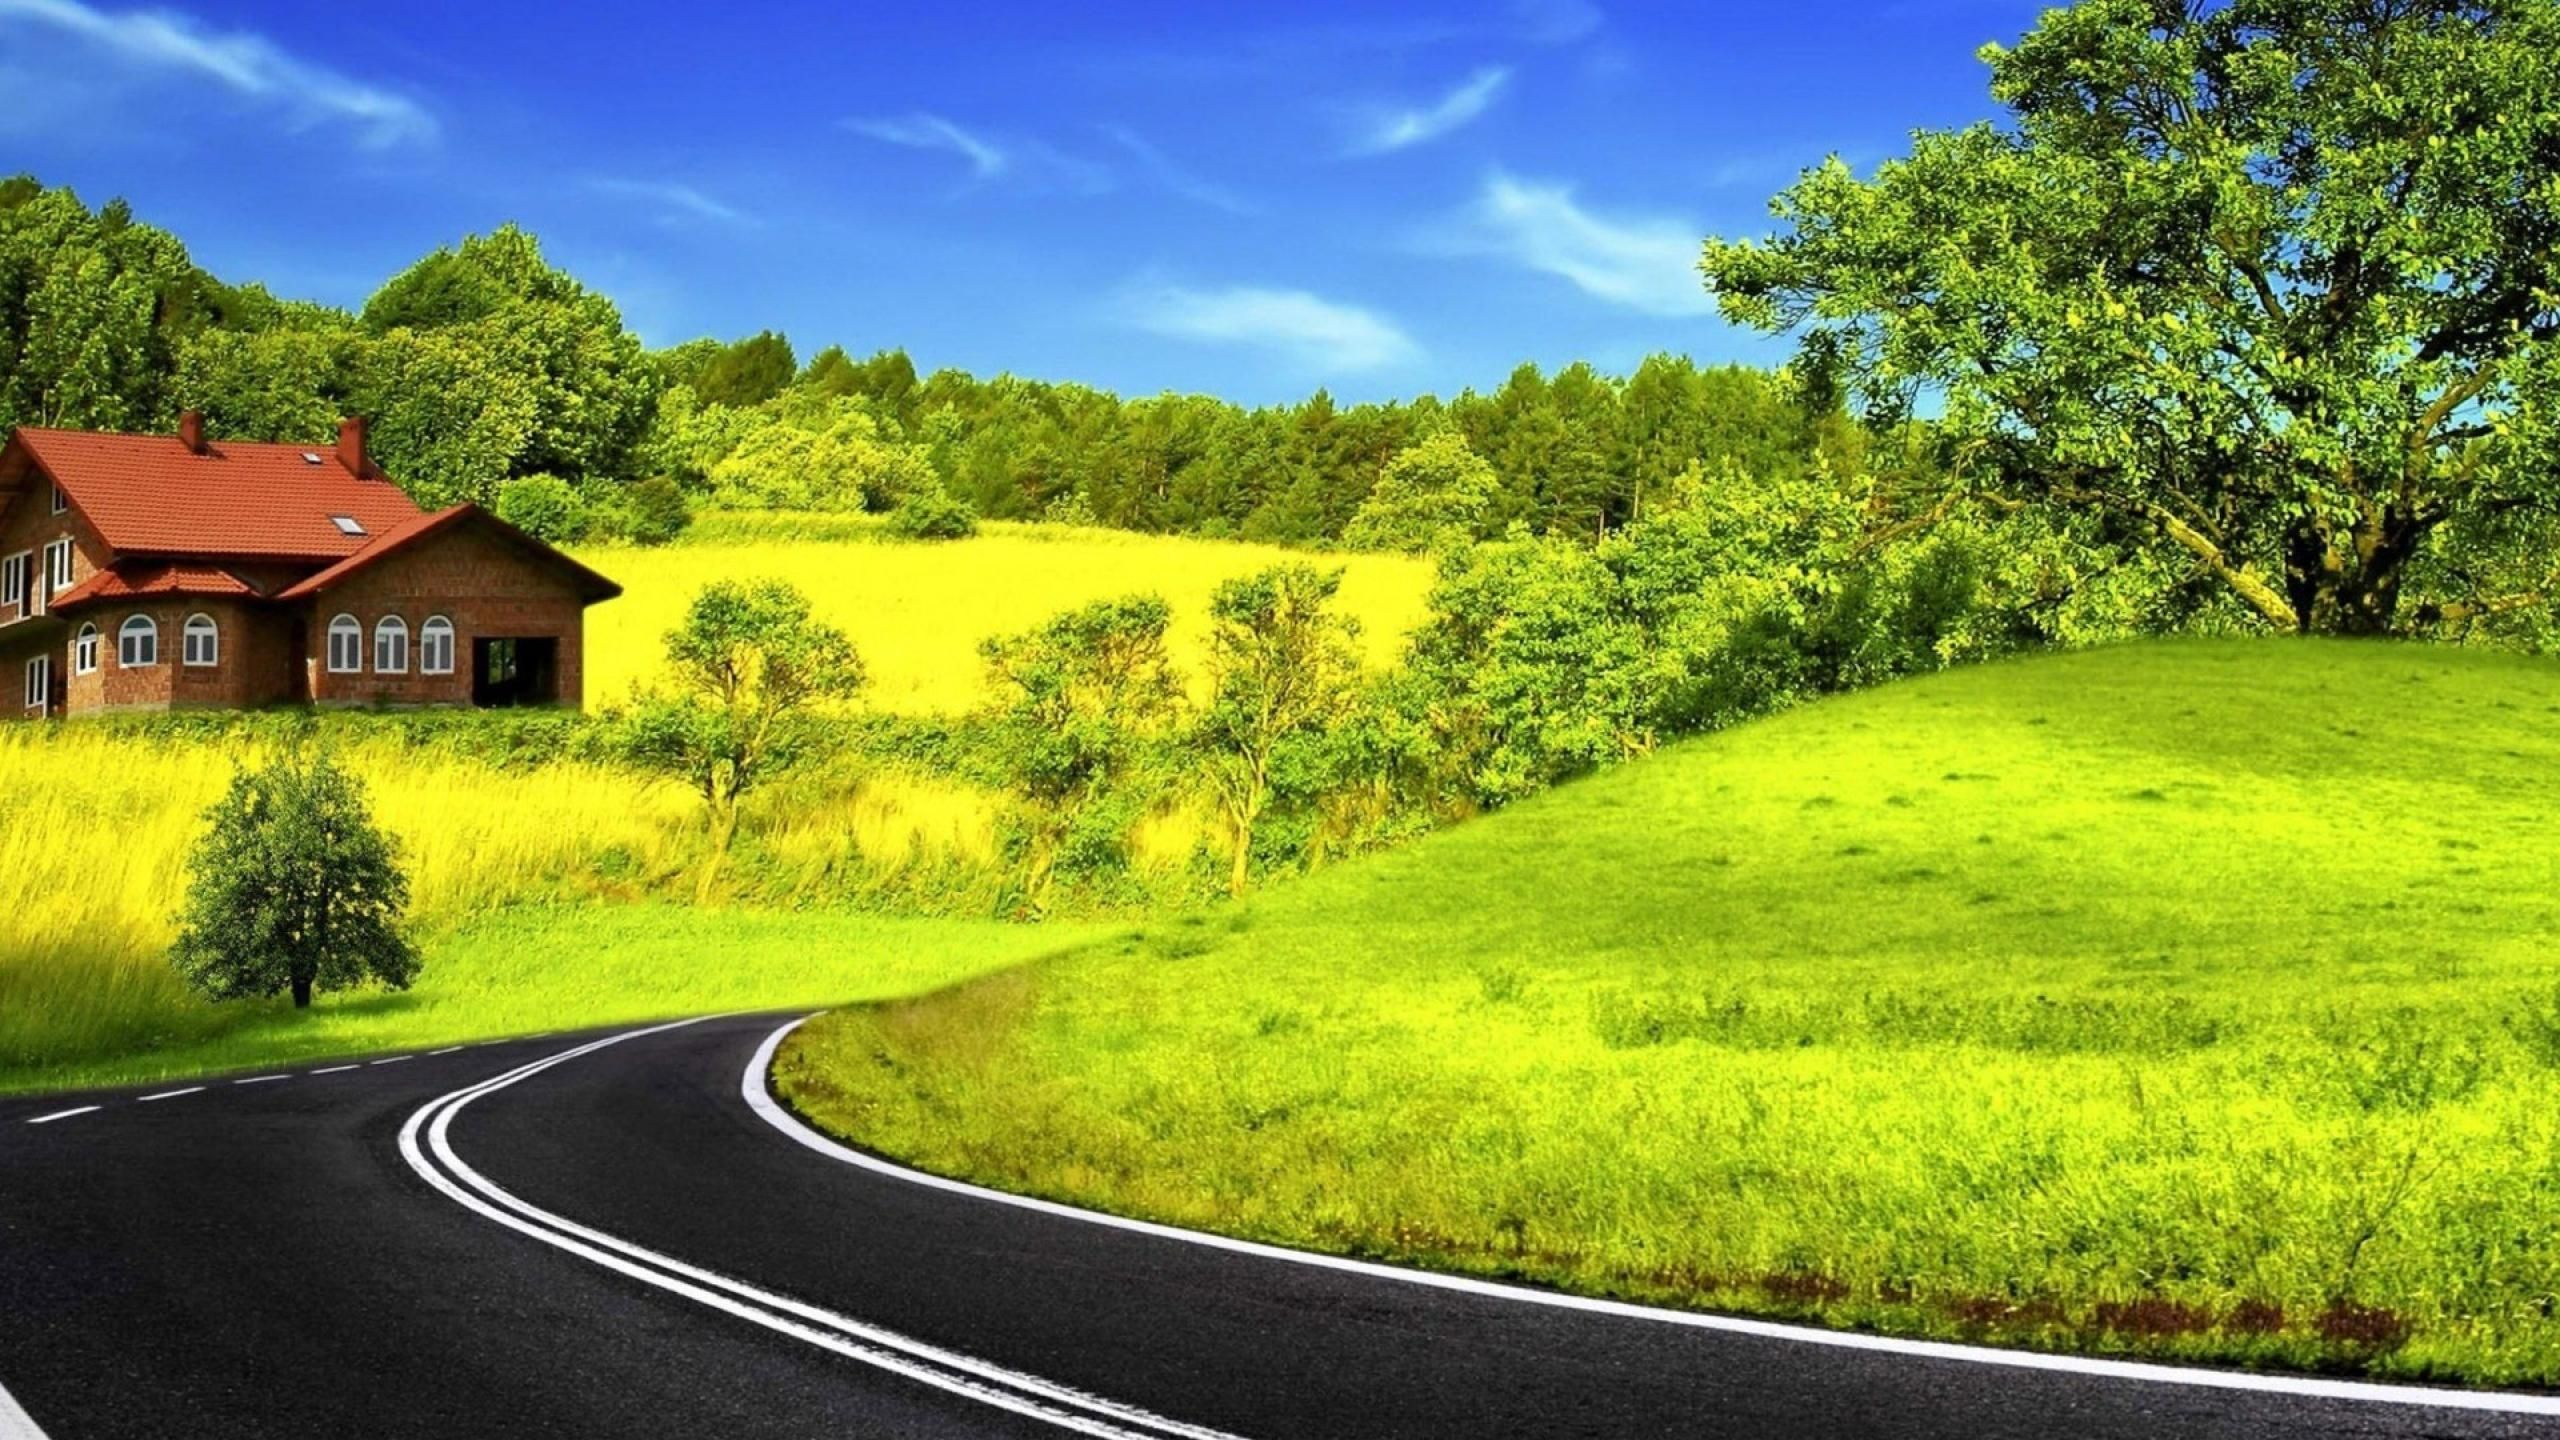 Road Background Nature Wallpaper